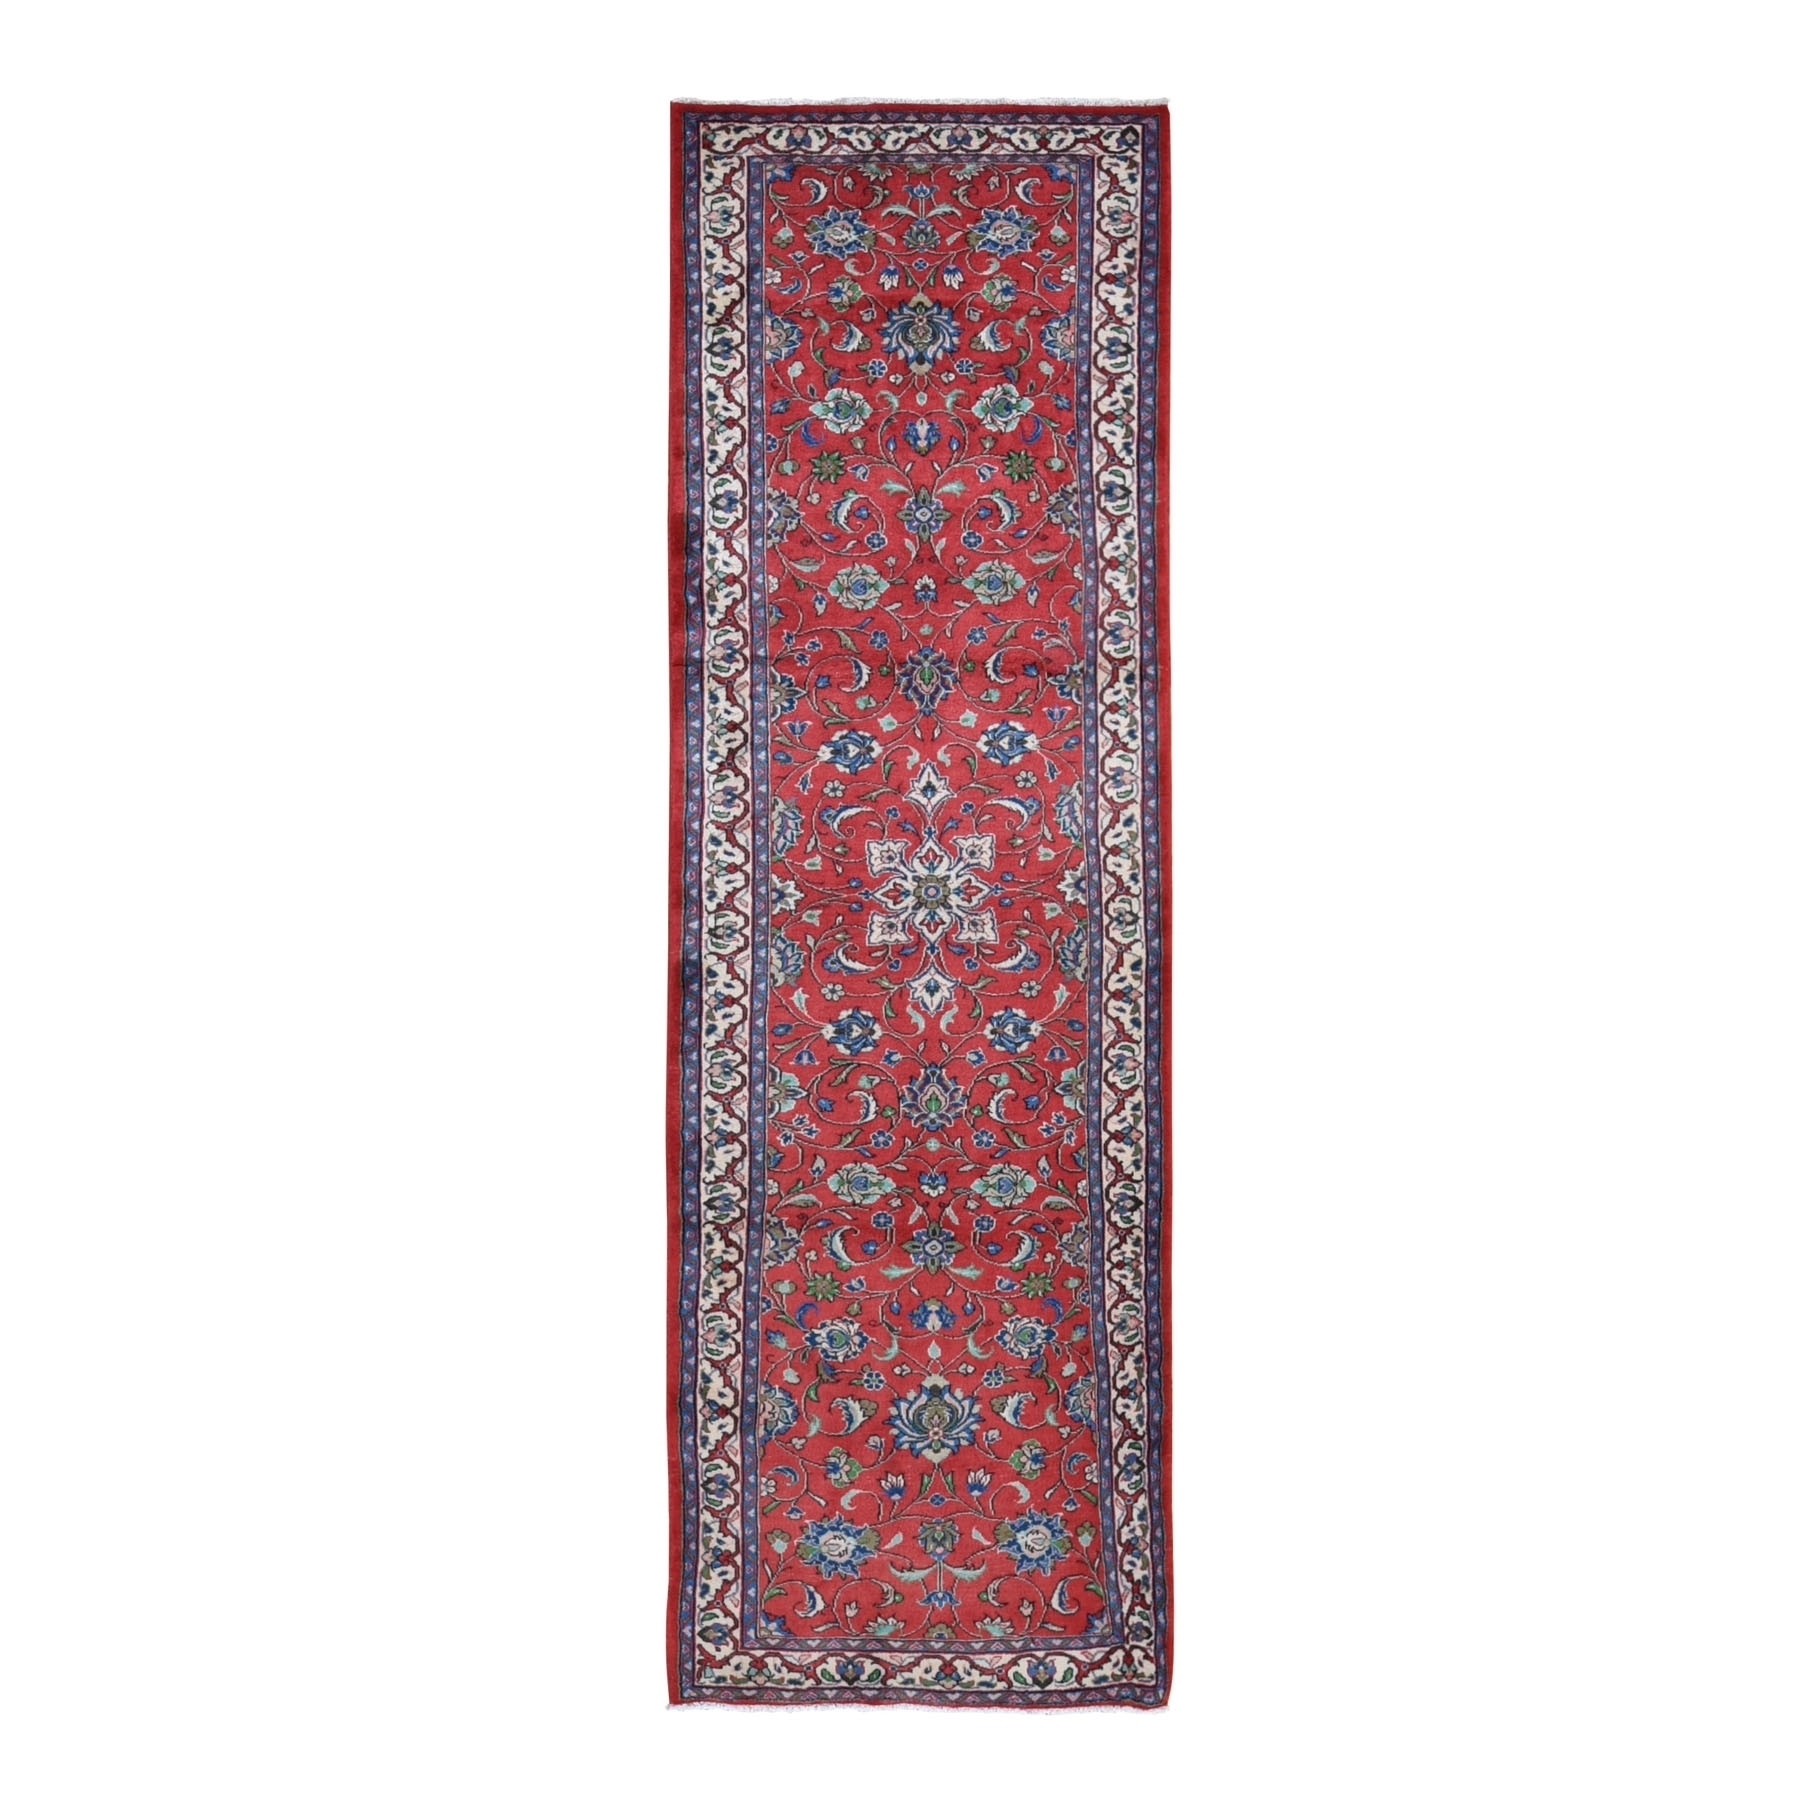 "3'x9'8"" Red New Persian Sarouk Pure Wool Hand Knotted Runner Oriental Rug"